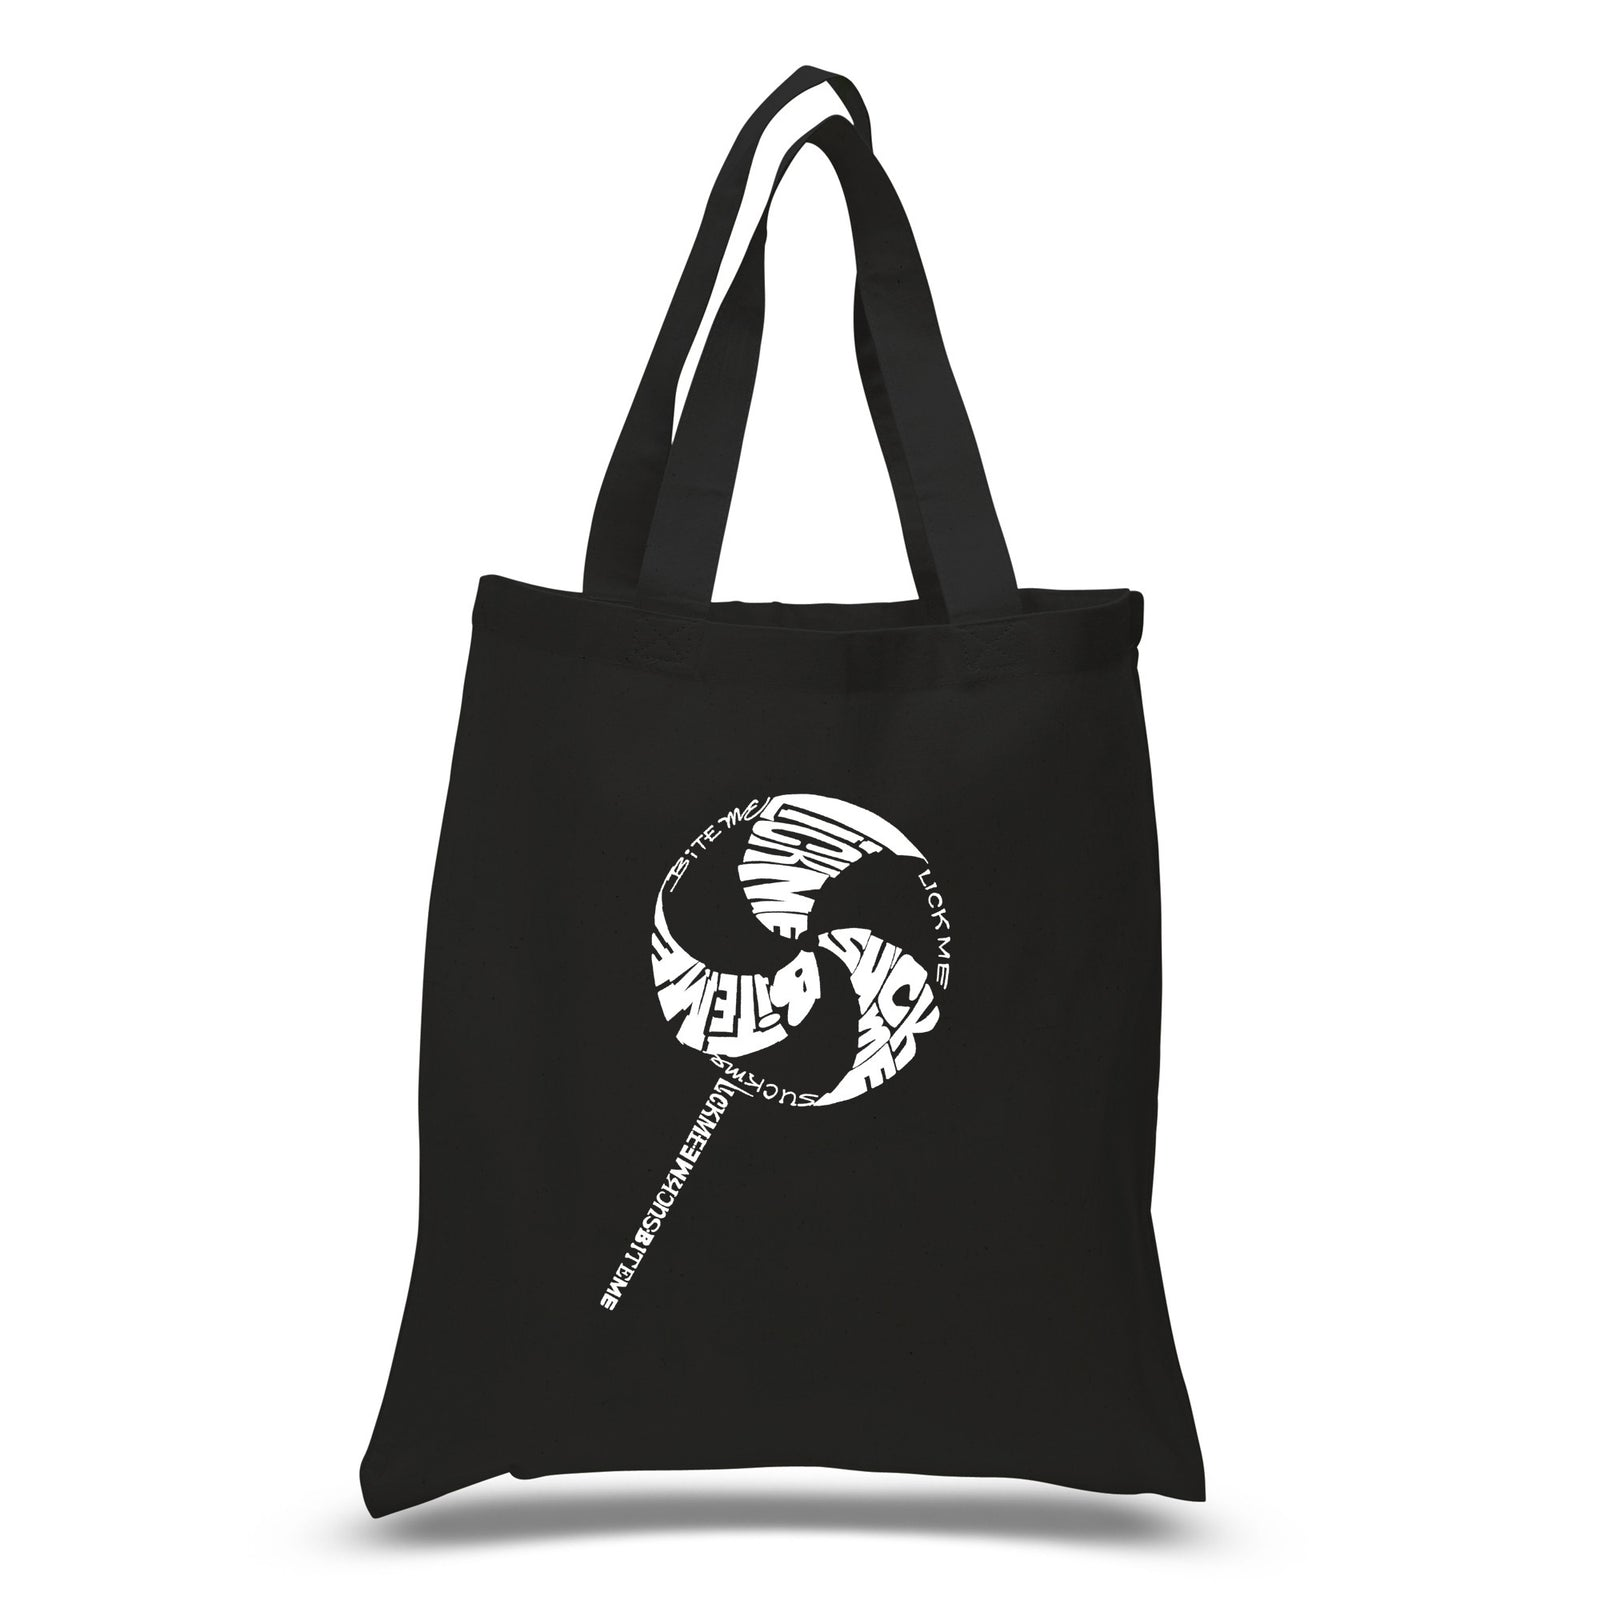 Small Tote Bag - Lollipop